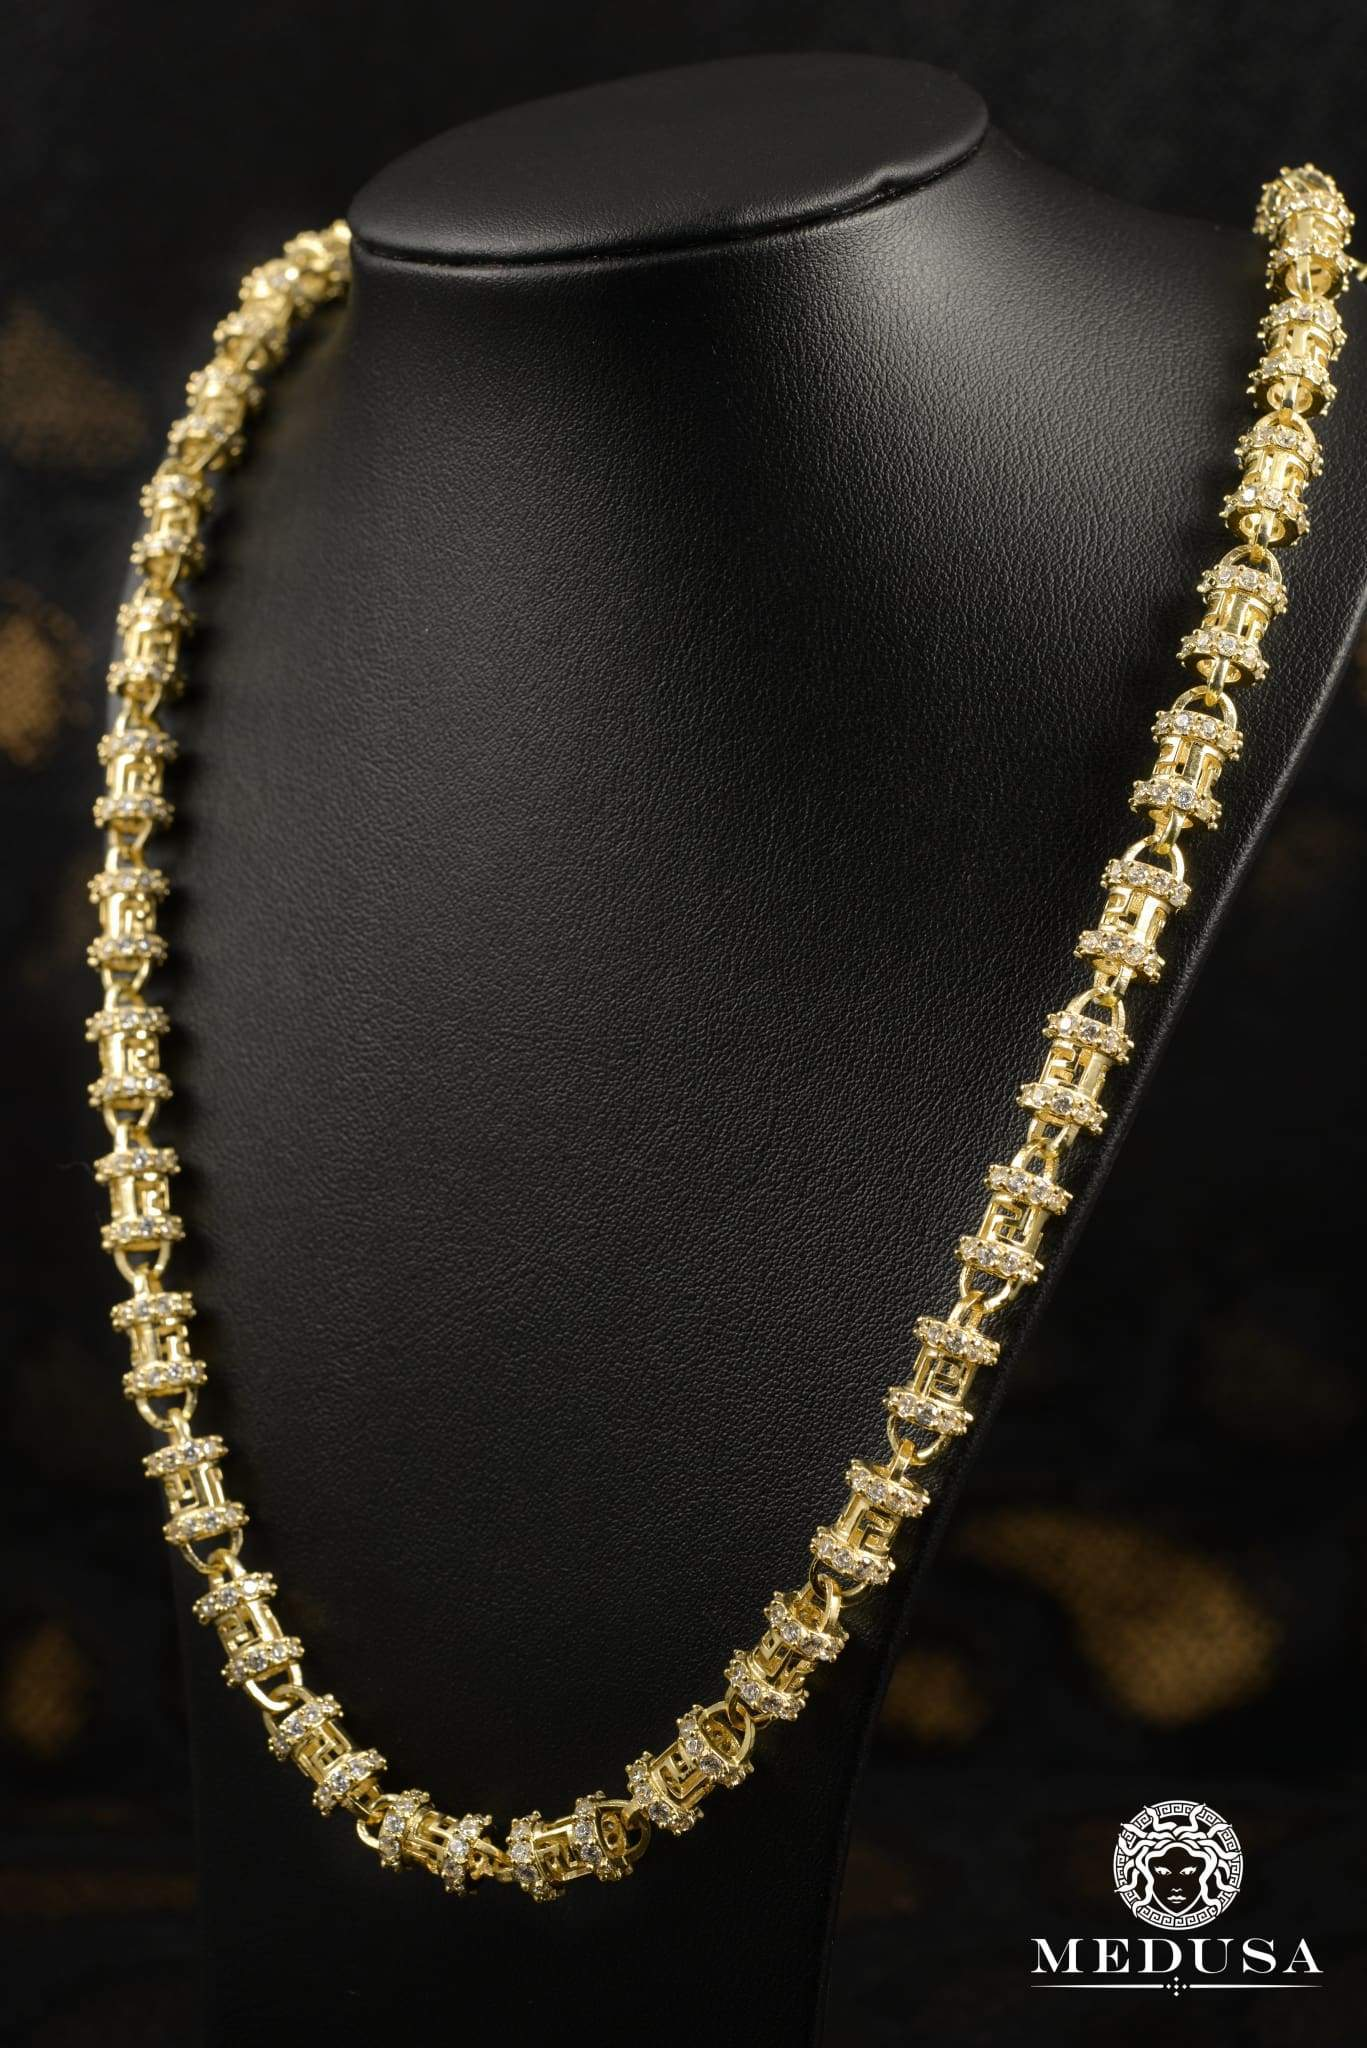 9mm Bullet Chain